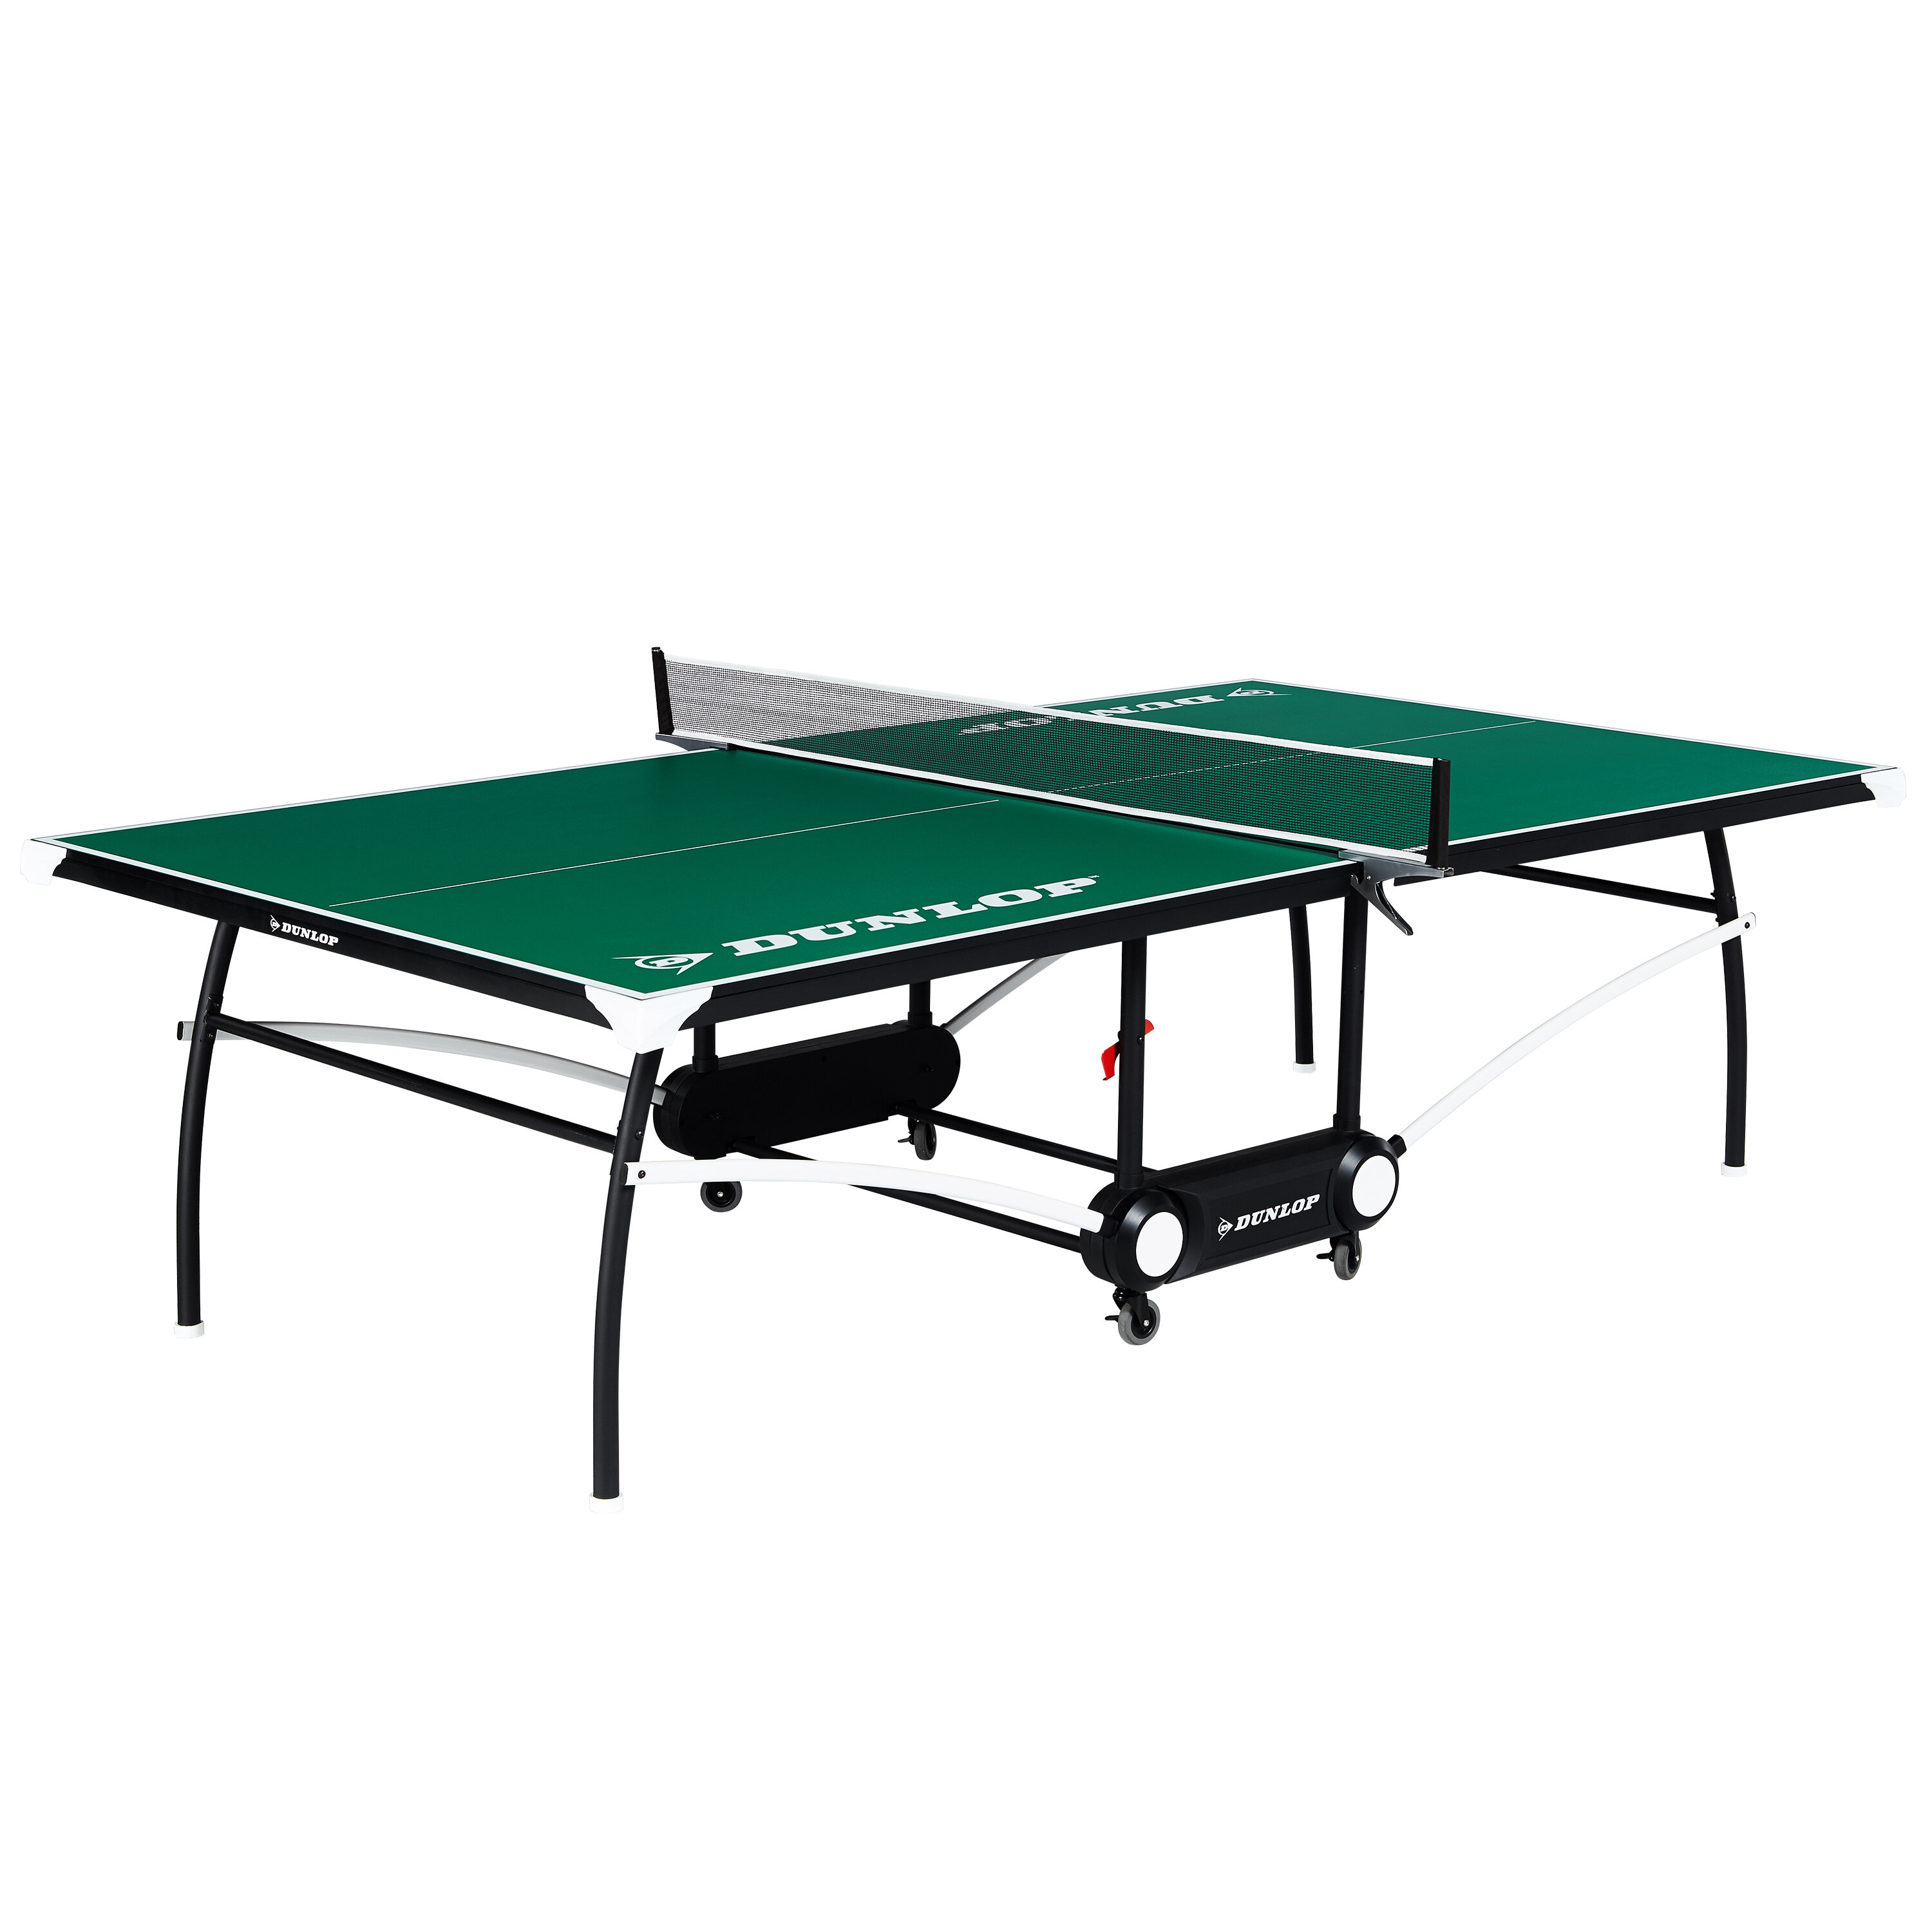 buybutterfly johnlewis indoor match main pdp slimline john lewis rsp at com table butterfly online tennis